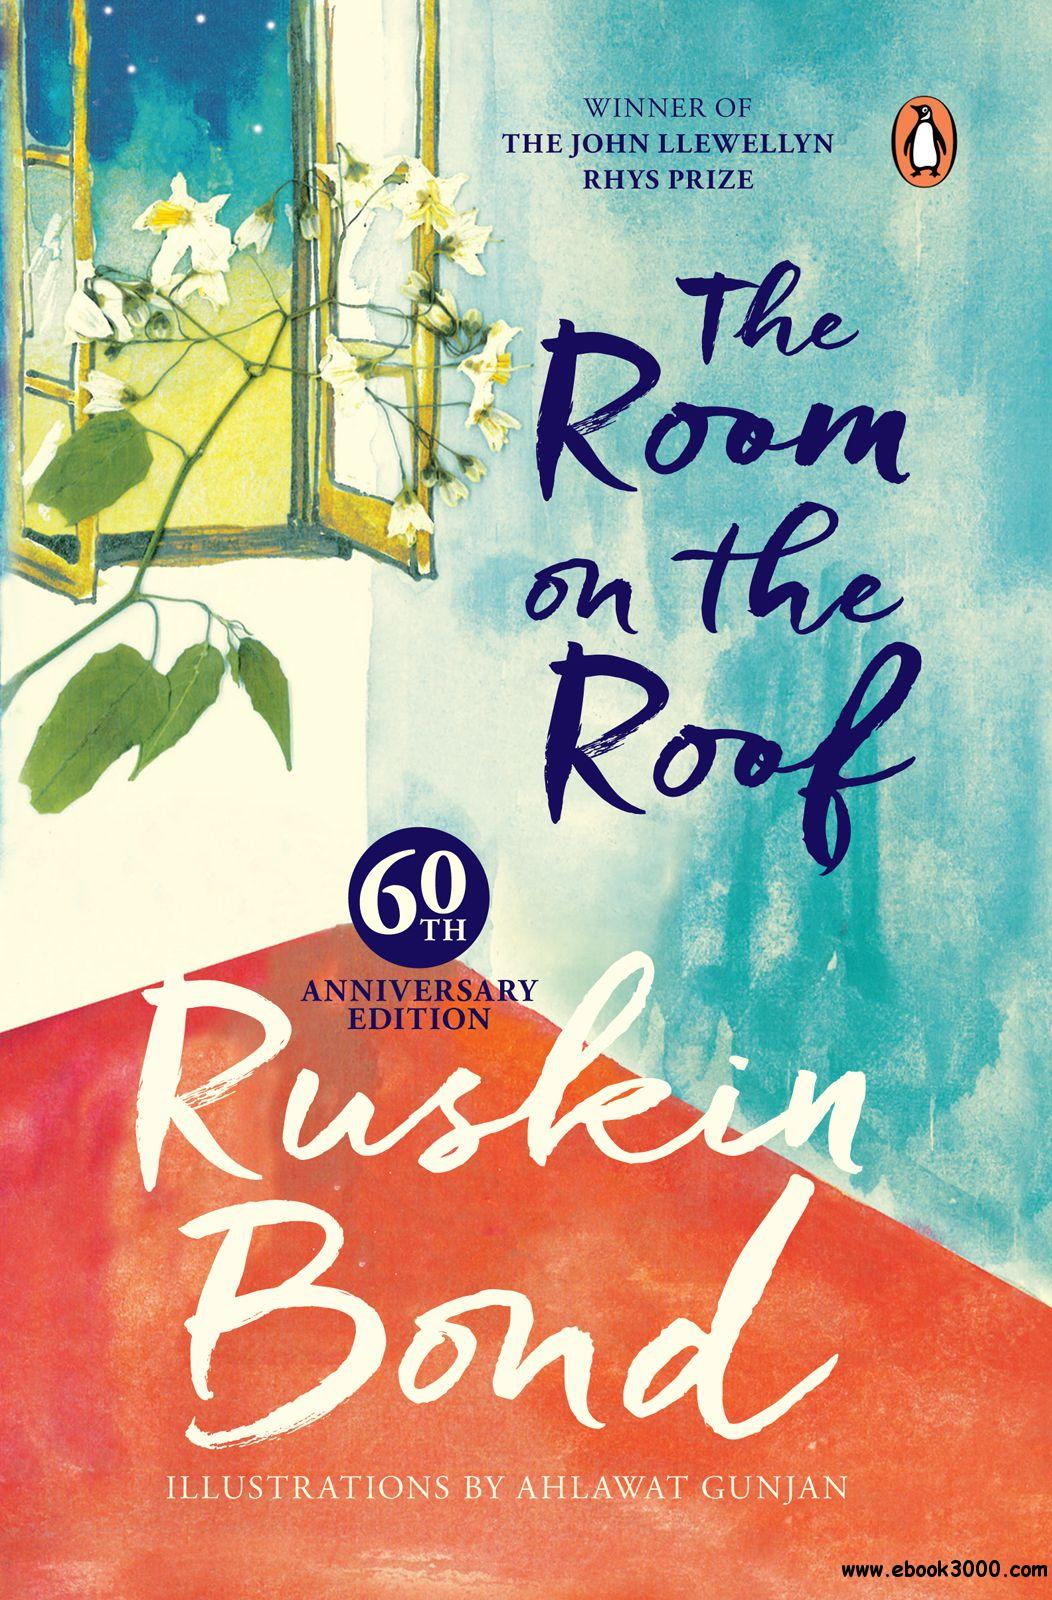 essay on room on the roof Essay title: a room on the roof savyon liebrecht was a child of survivors from the holocaust and like many other children who went through the same experience she had to deal with the trauma of the past.